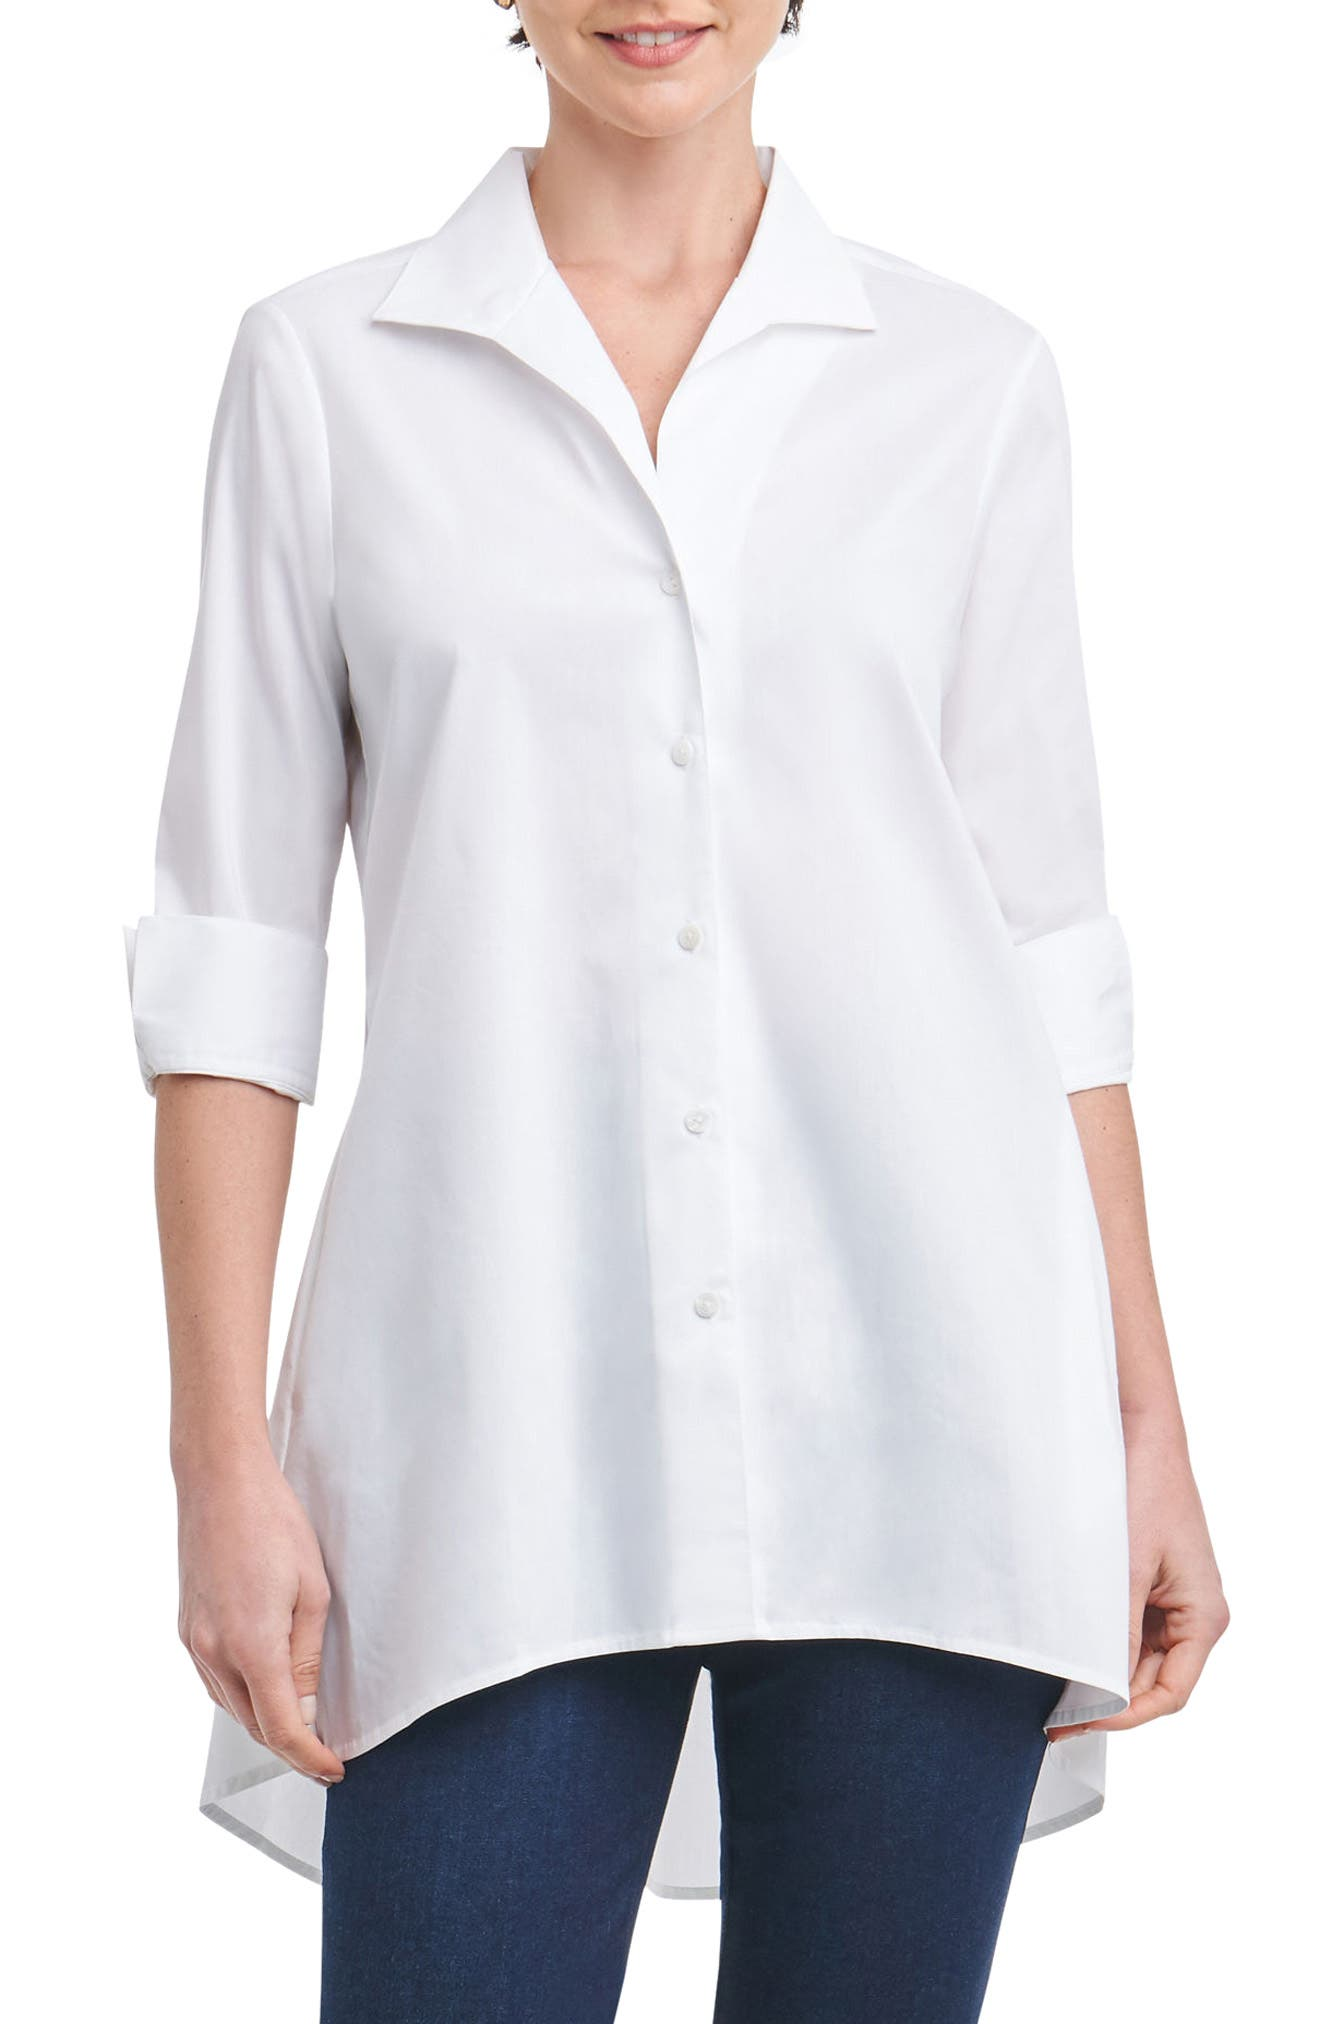 Alternate Image 1 Selected - Foxcroft Lucy Stretch Tunic Shirt